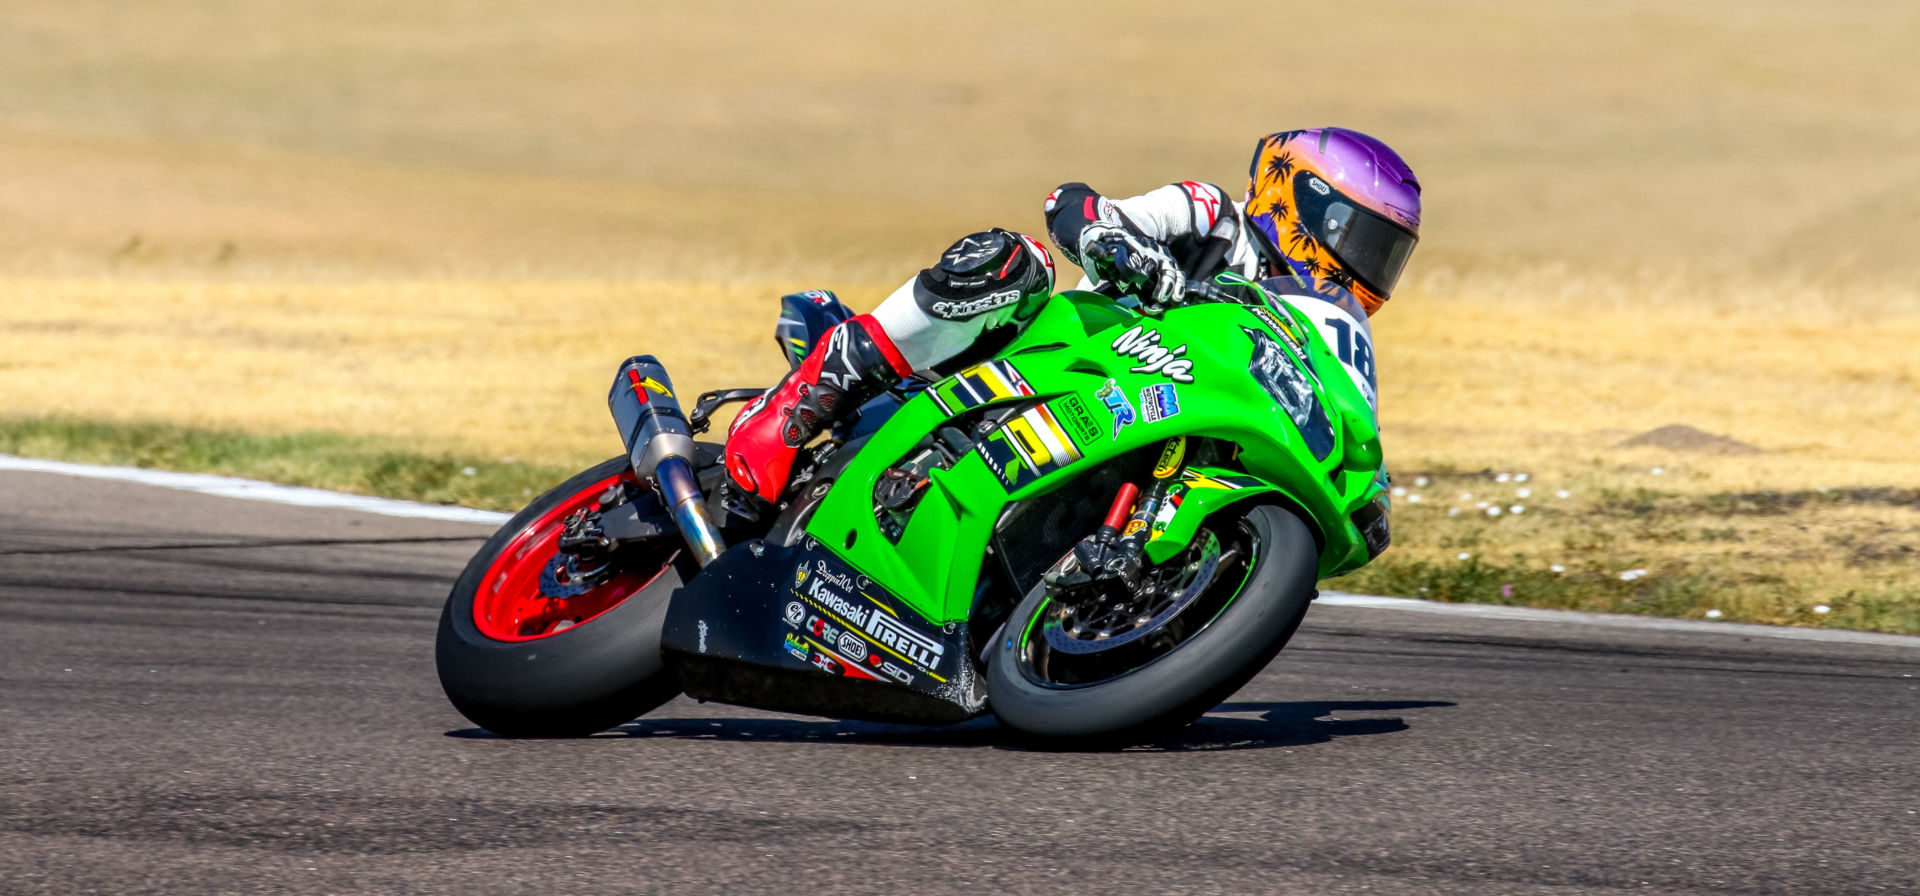 Andrew Lee (18) in action at High Plains Raceway. Photo by Brandon Wren, courtesy Pirelli.